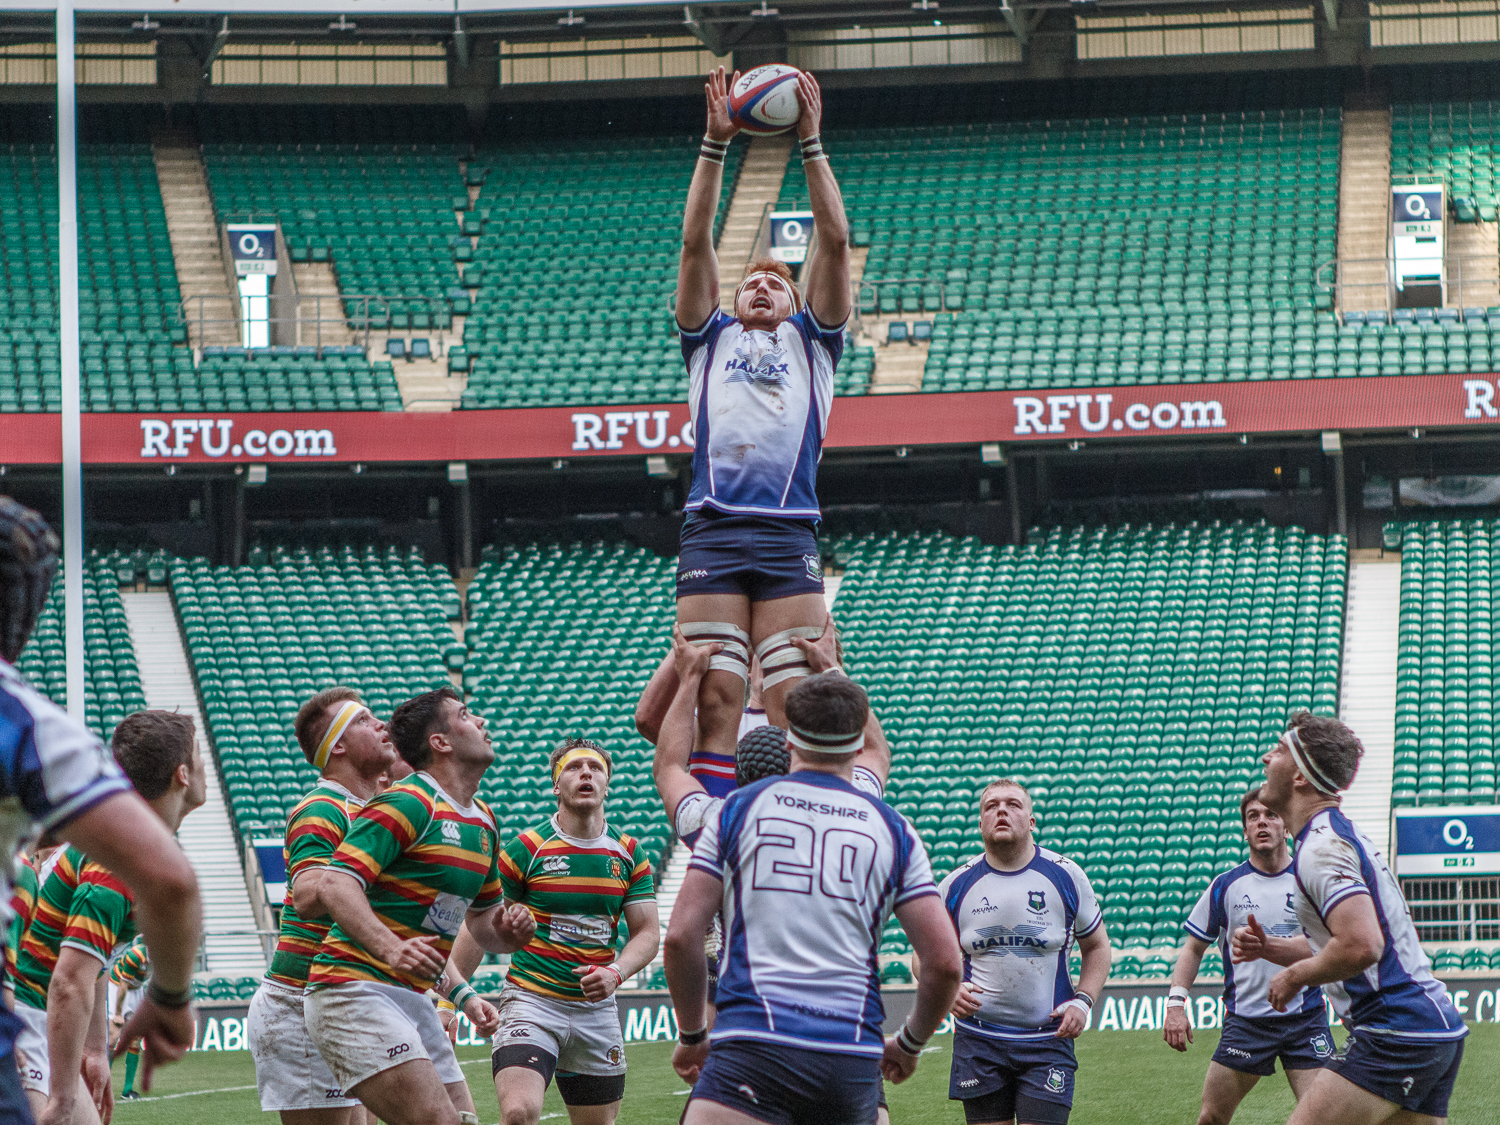 Late Lineout Won